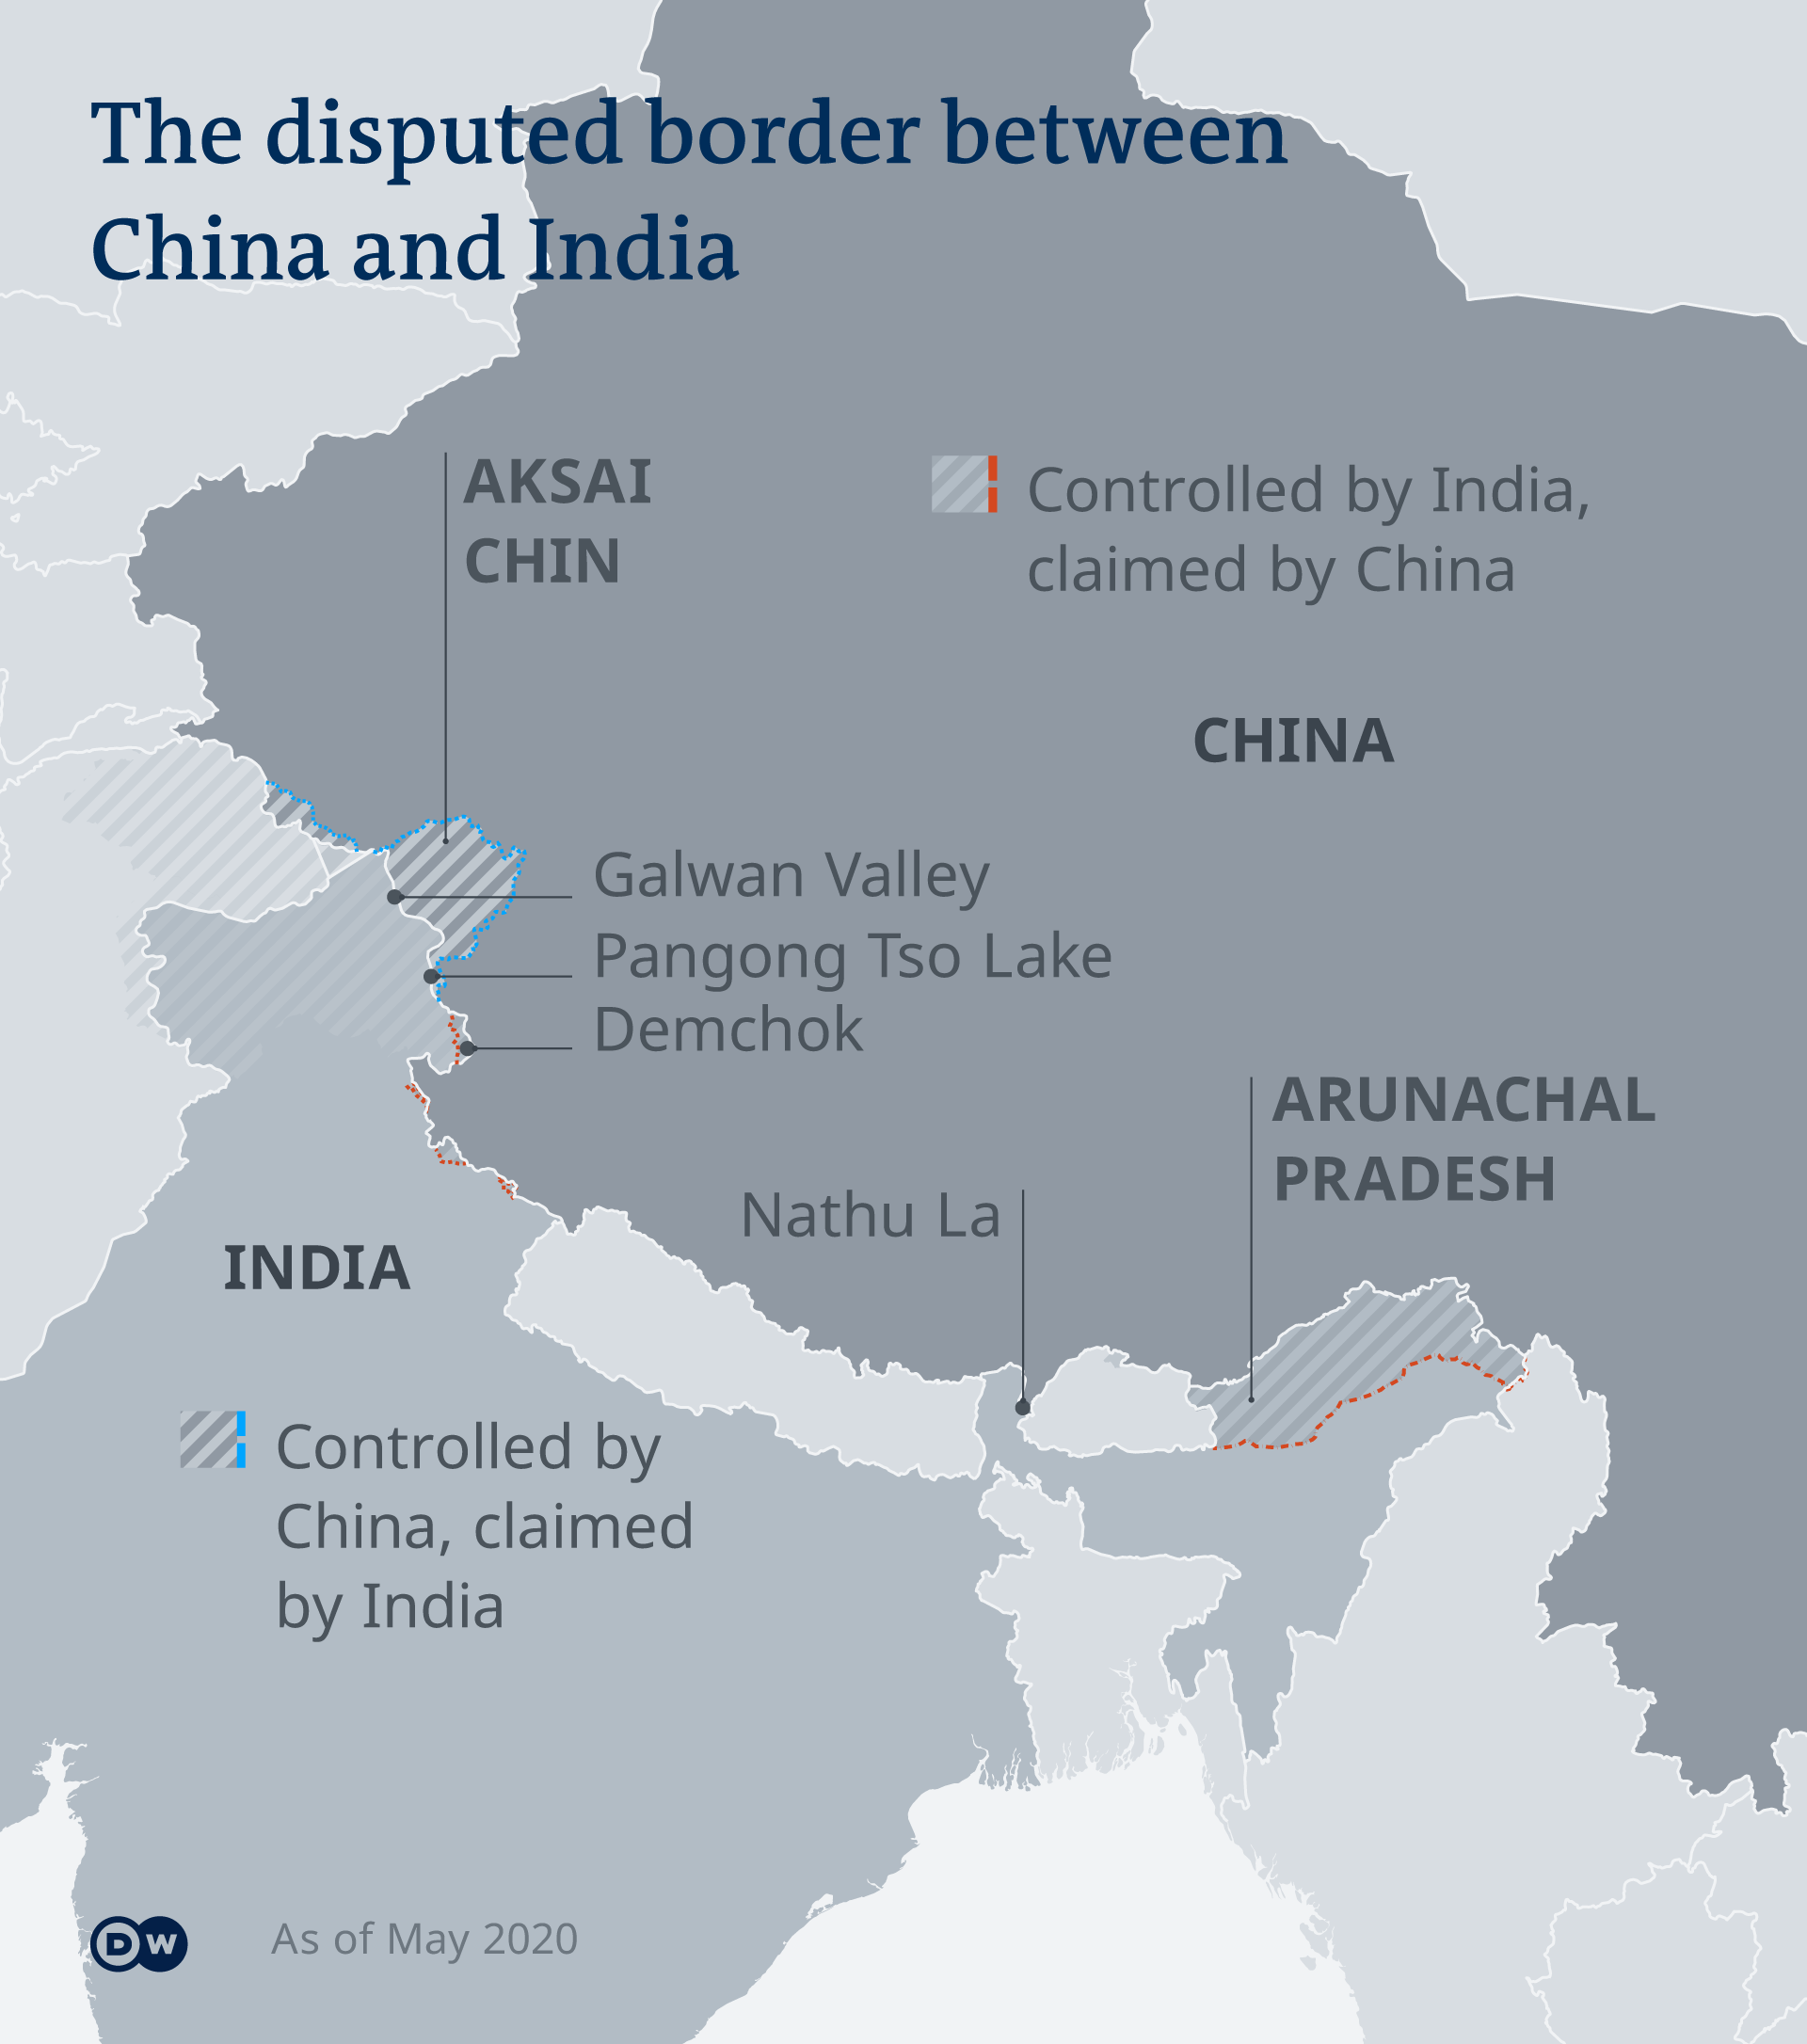 The disputed border between India and China